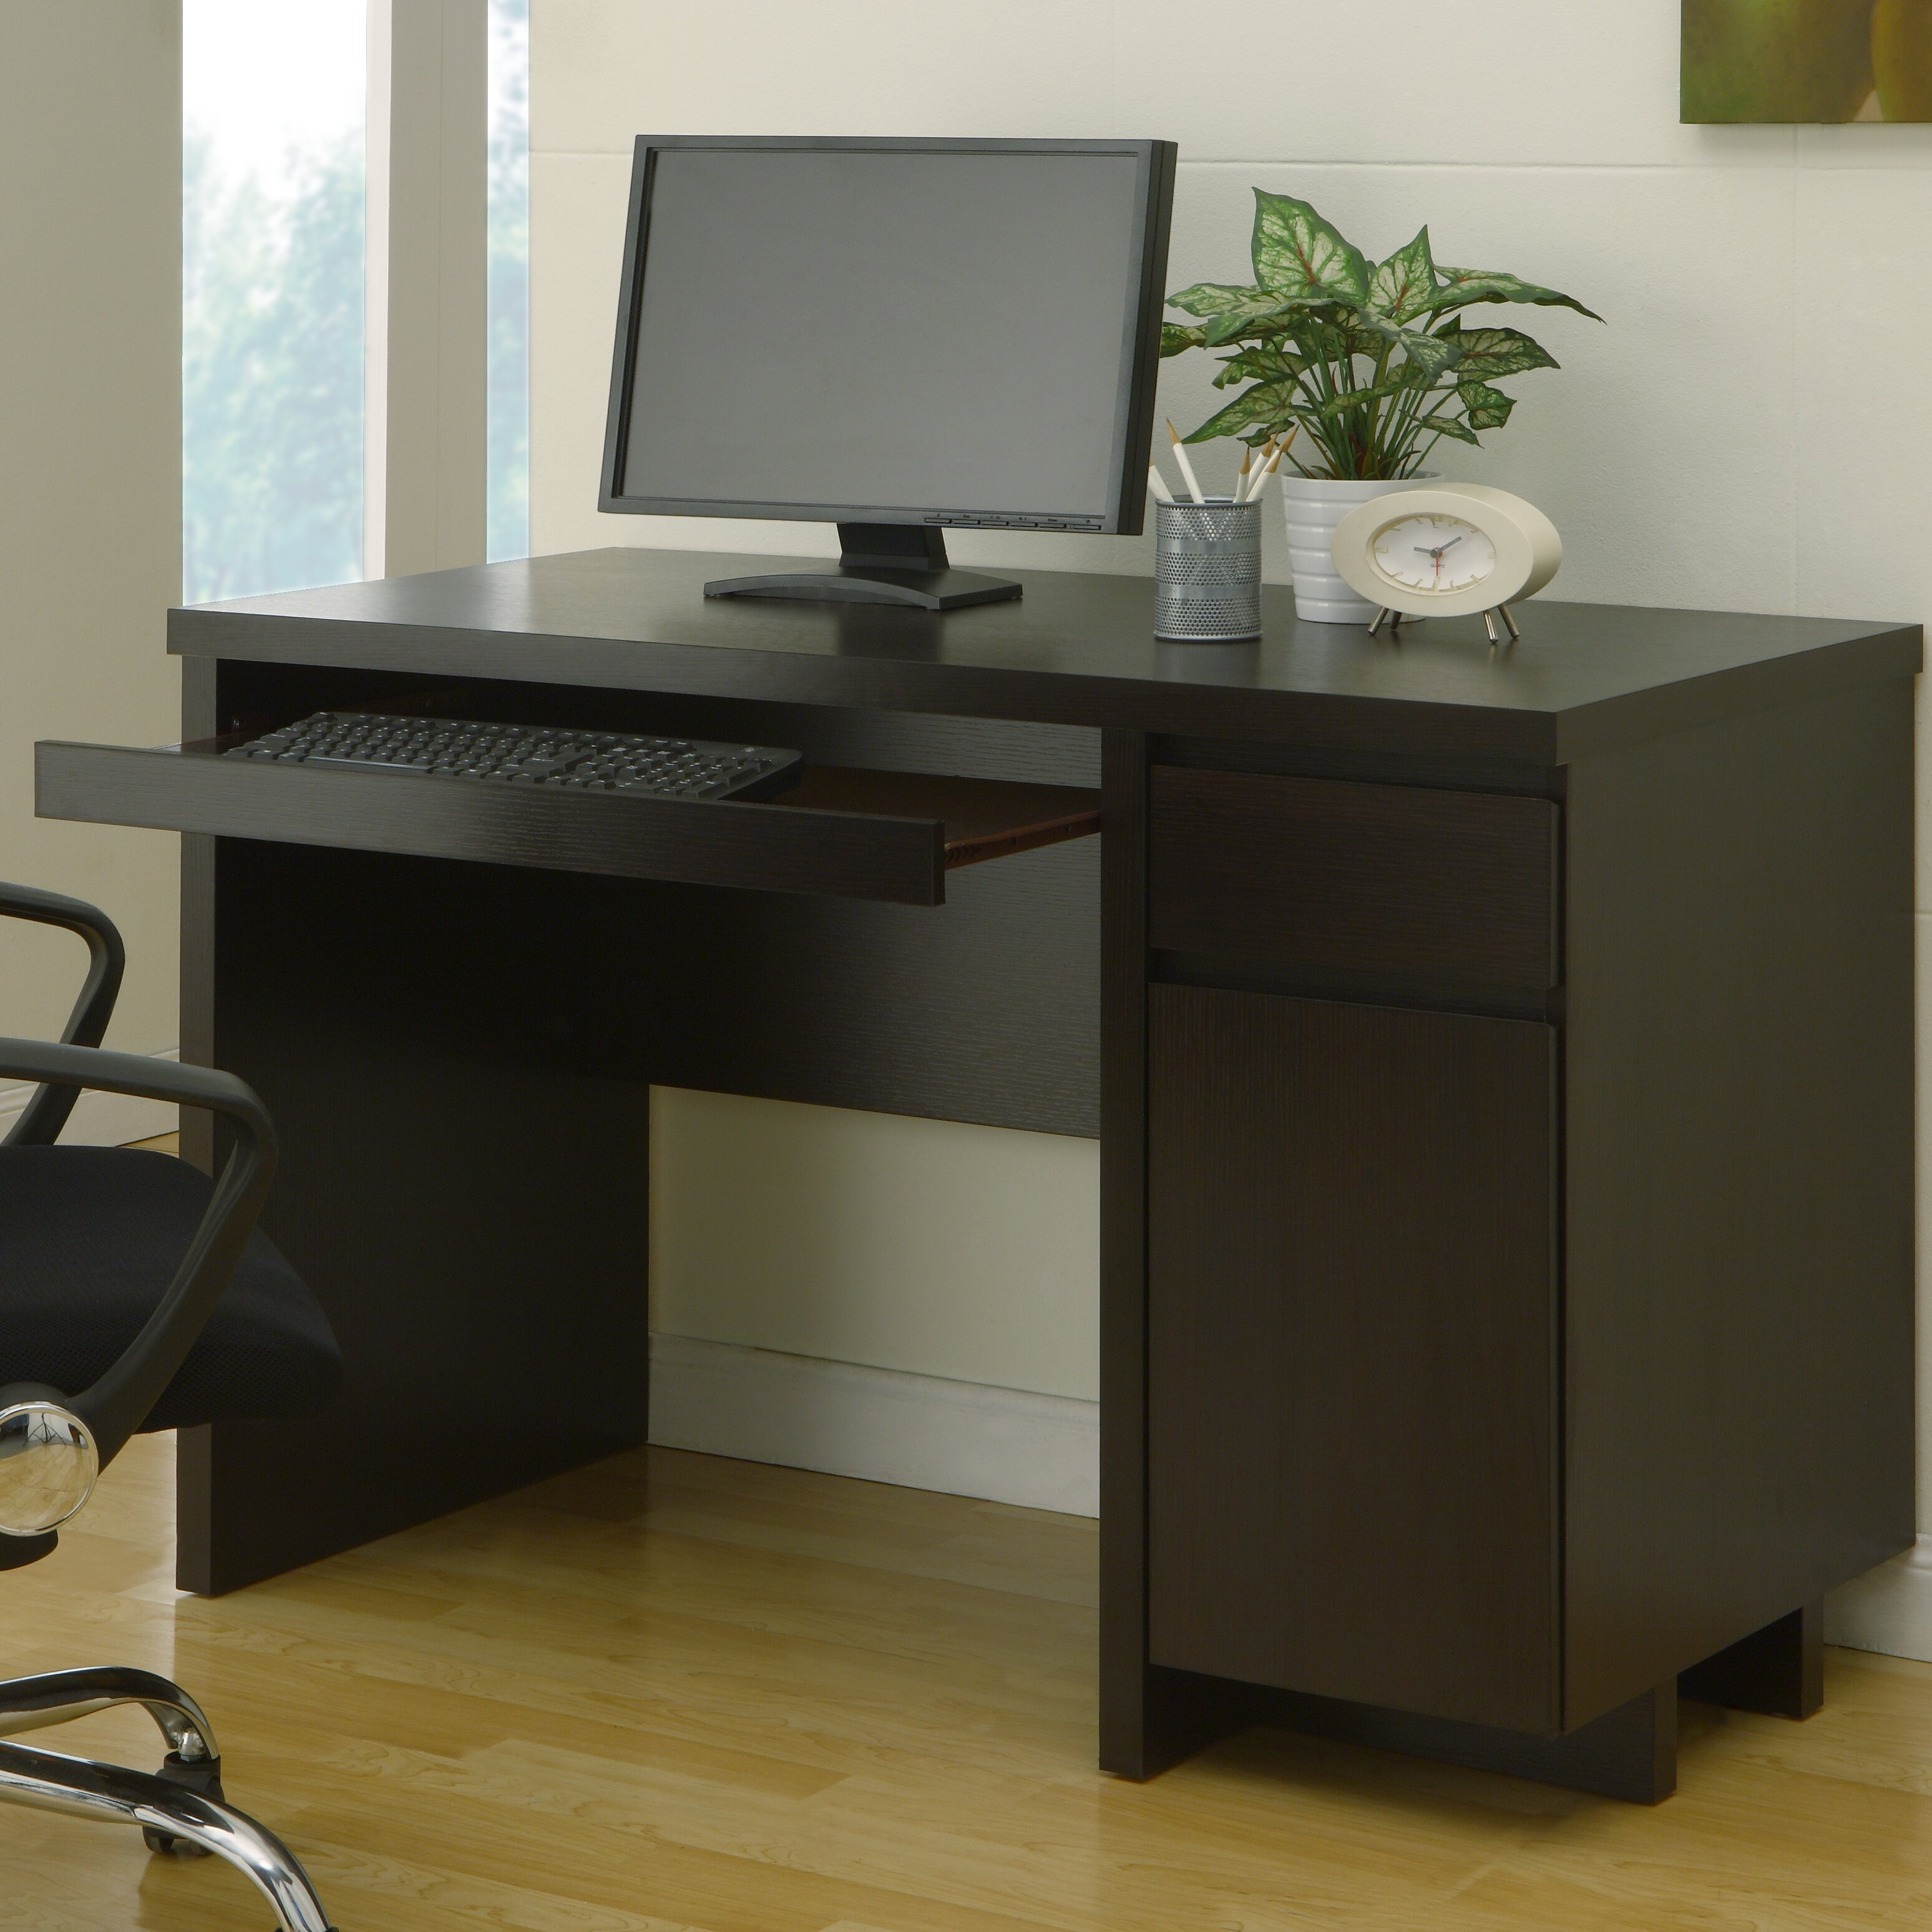 Hokku designs chilton basic computer desk with drawer for Houzz pro account cost